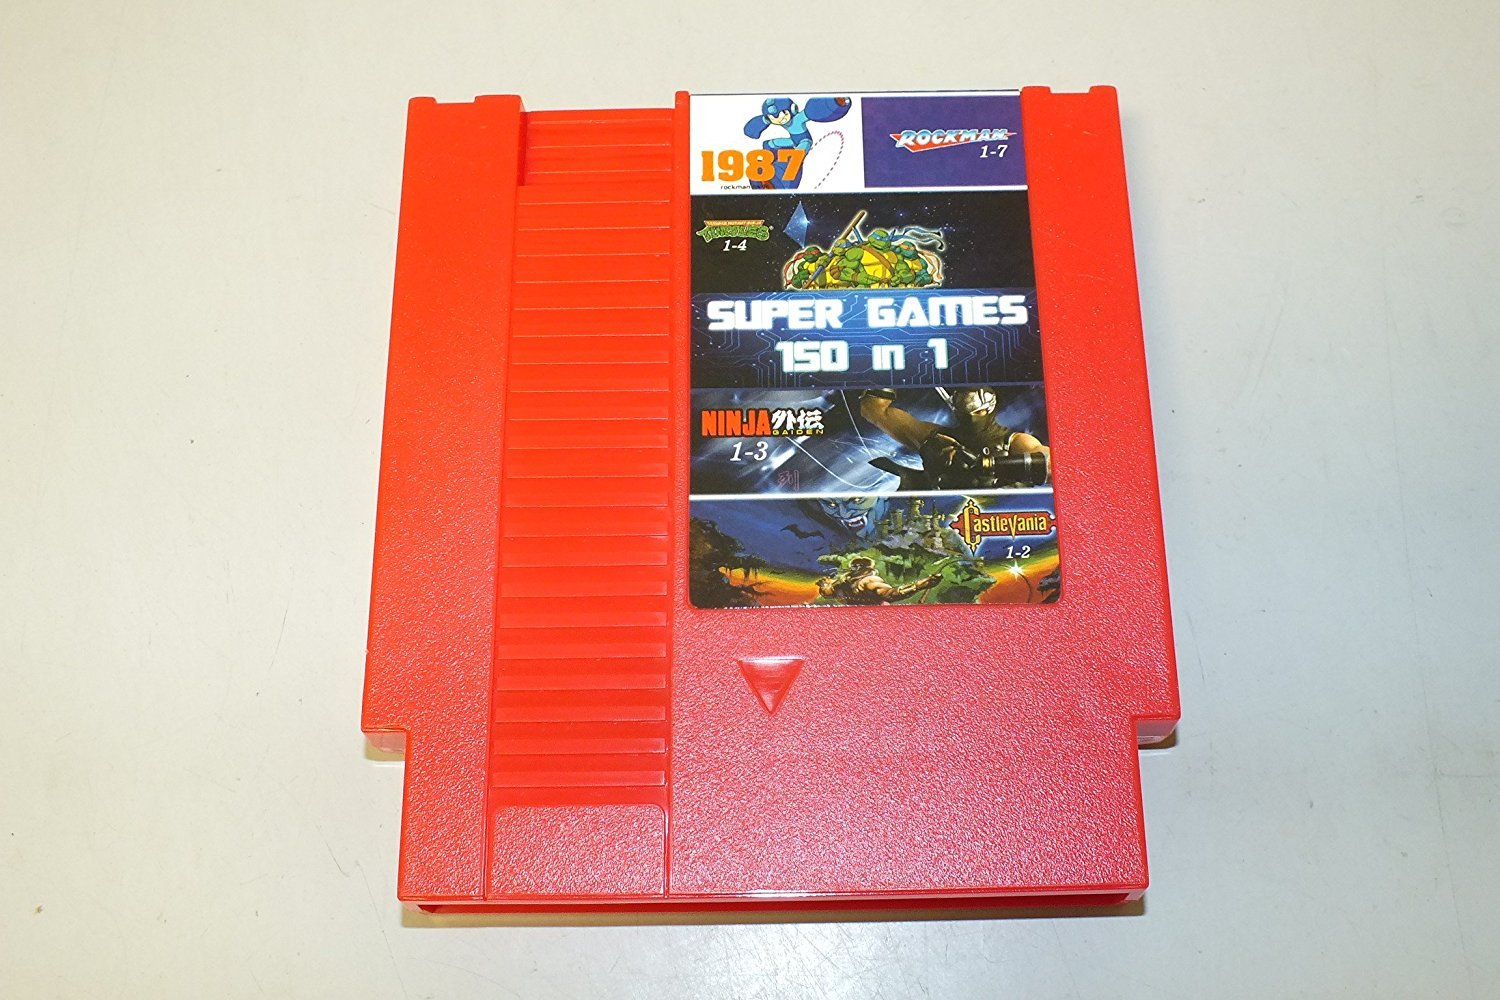 ANAY 150 in 1 Super Games Multi-Cart Red